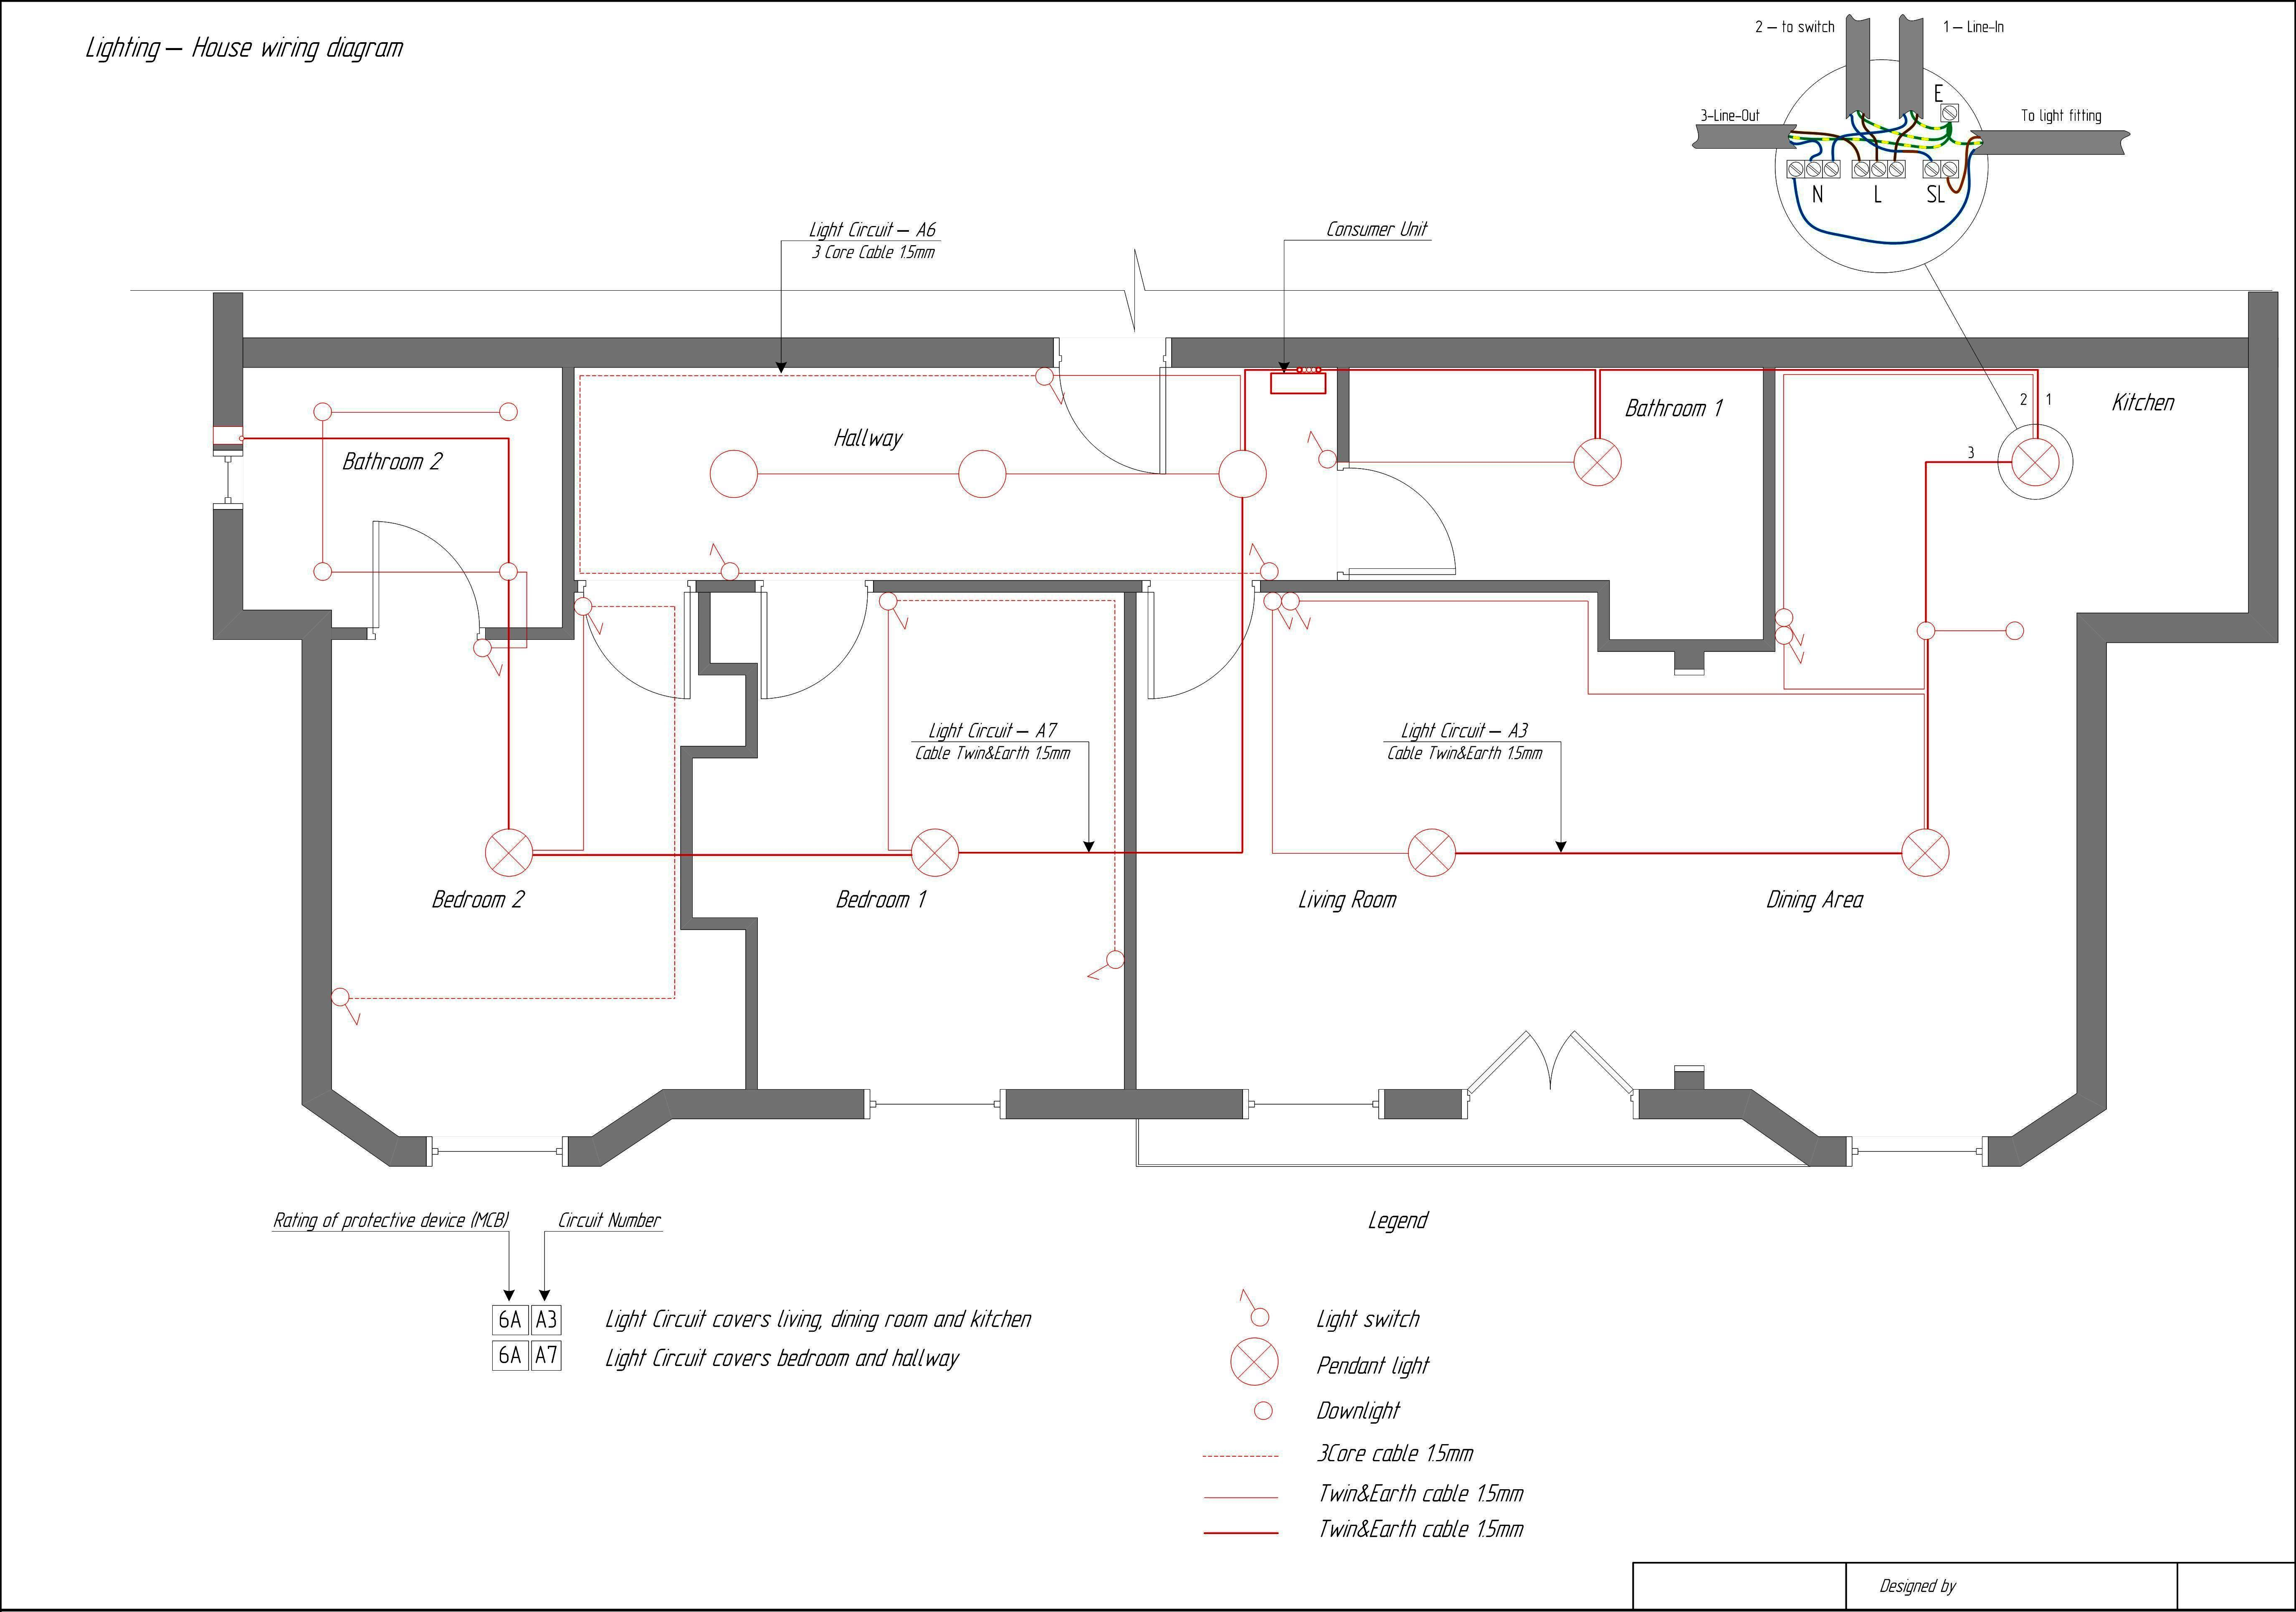 Household Wiring Diagrams - Data Wiring Diagram Today - Basic House Wiring Diagram